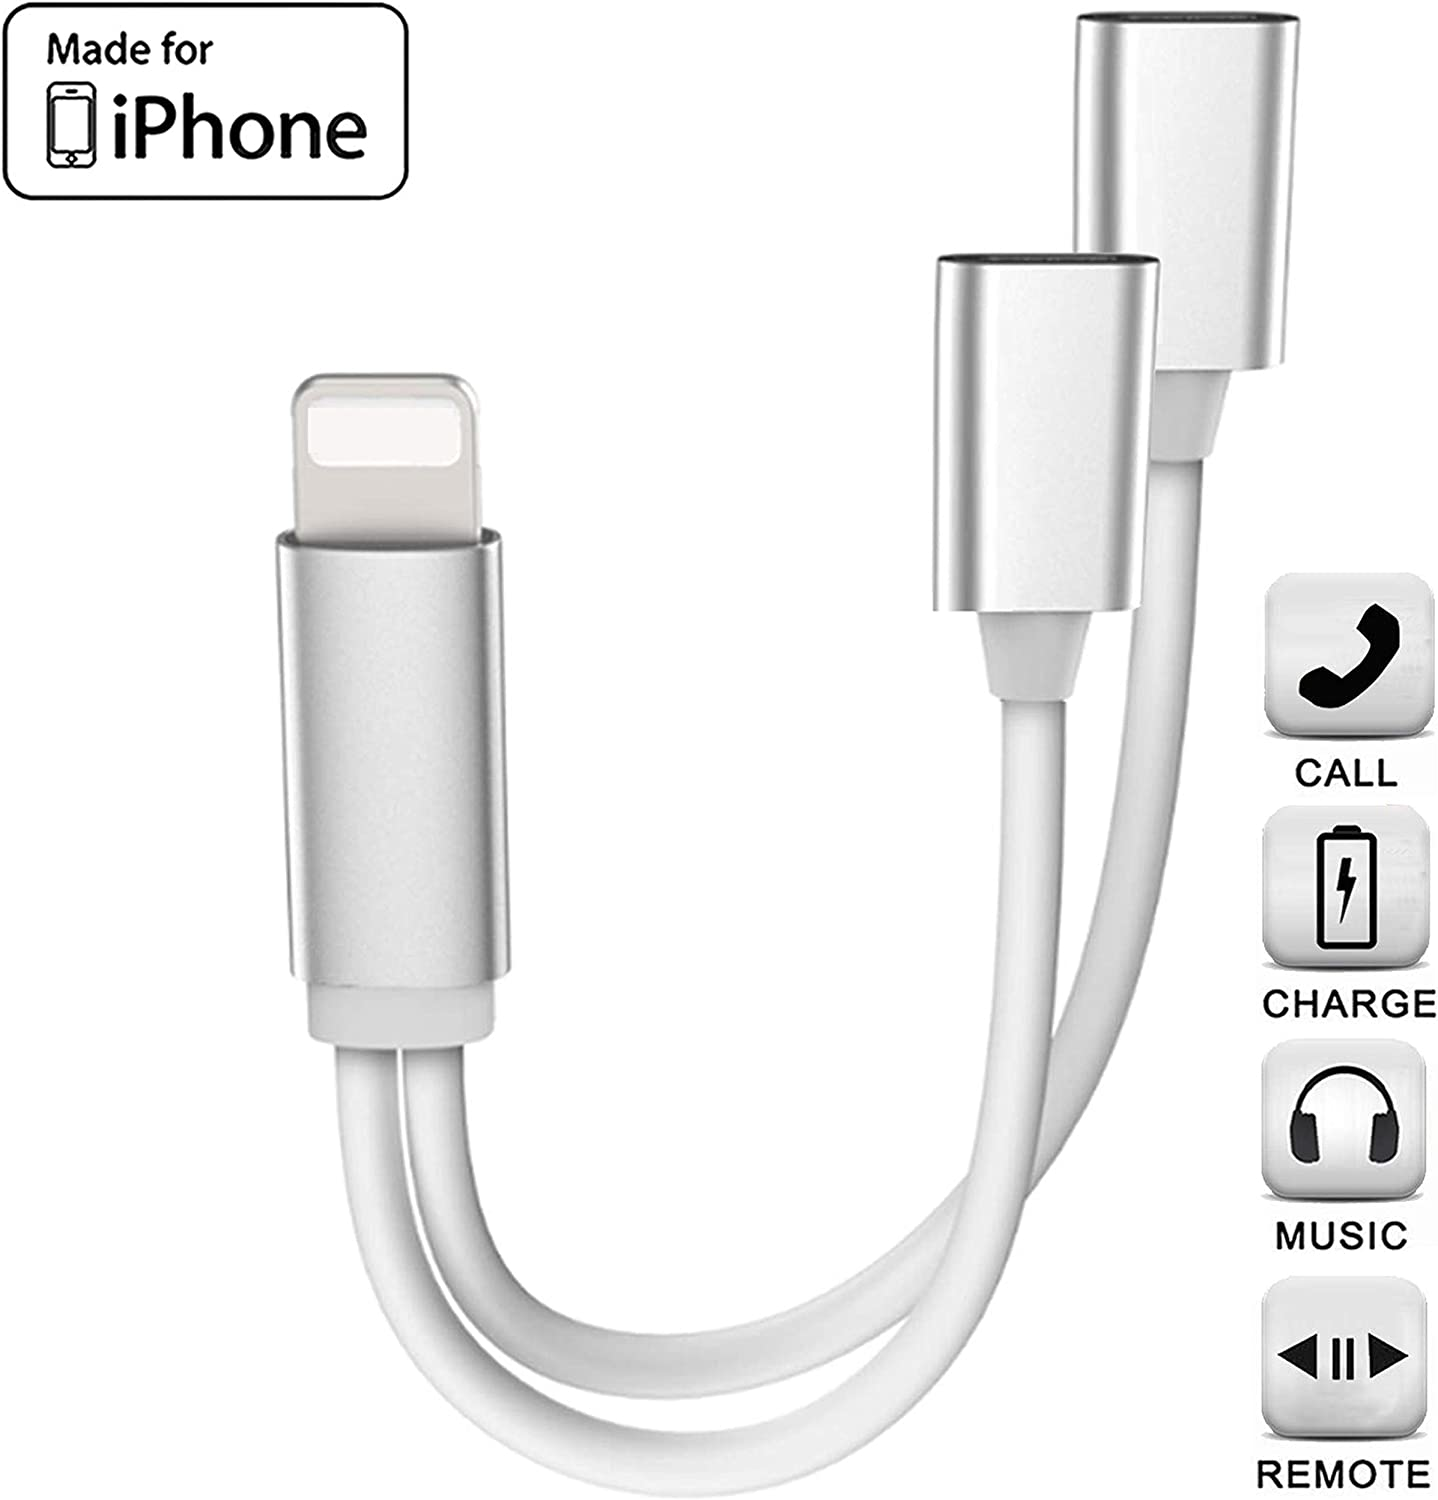 iPhone Adapter & Splitter, [Apple MFi Certified] 2 in 1 Dual Lightning Headphone Jack AUX Audio and Charge Adaptor Dongle Cable Compatible for iPhone 11 pro/Xs Max/XR/X/8/7 Support All iOS System